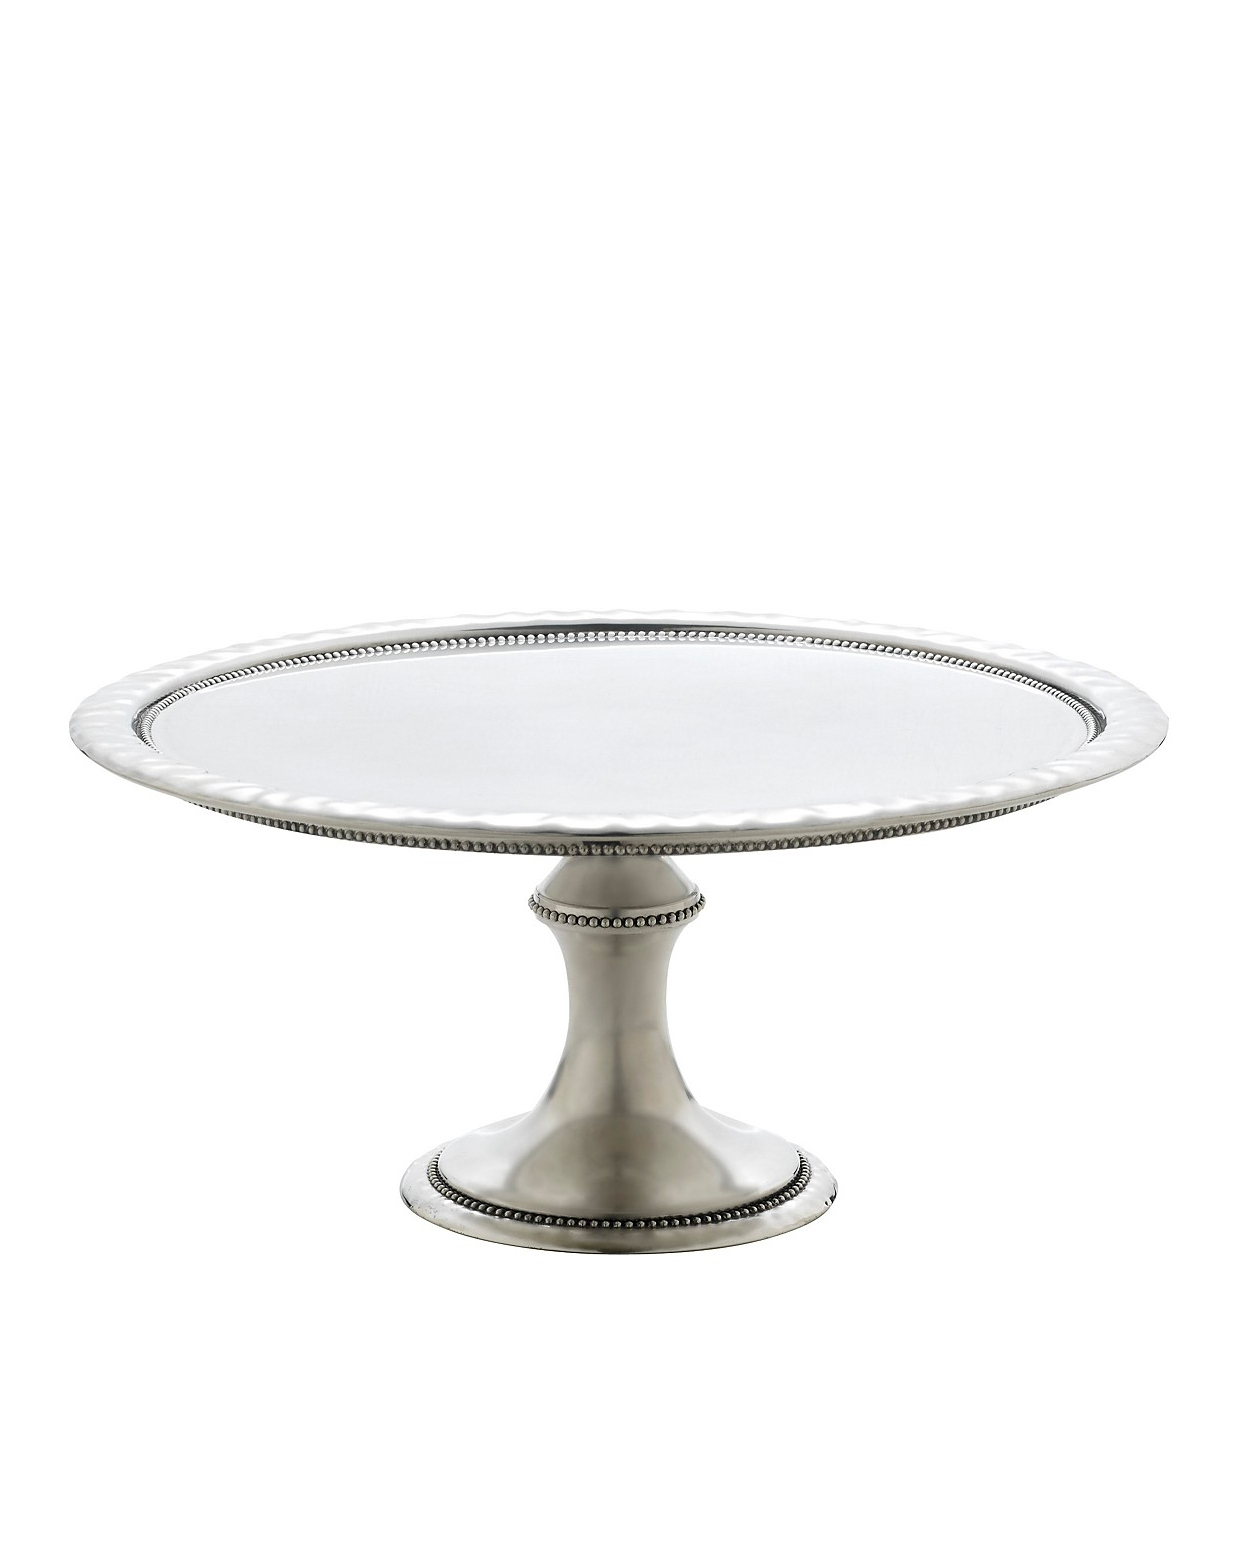 wedding-cake-stands-bloomingdales-pewter-1115.jpg